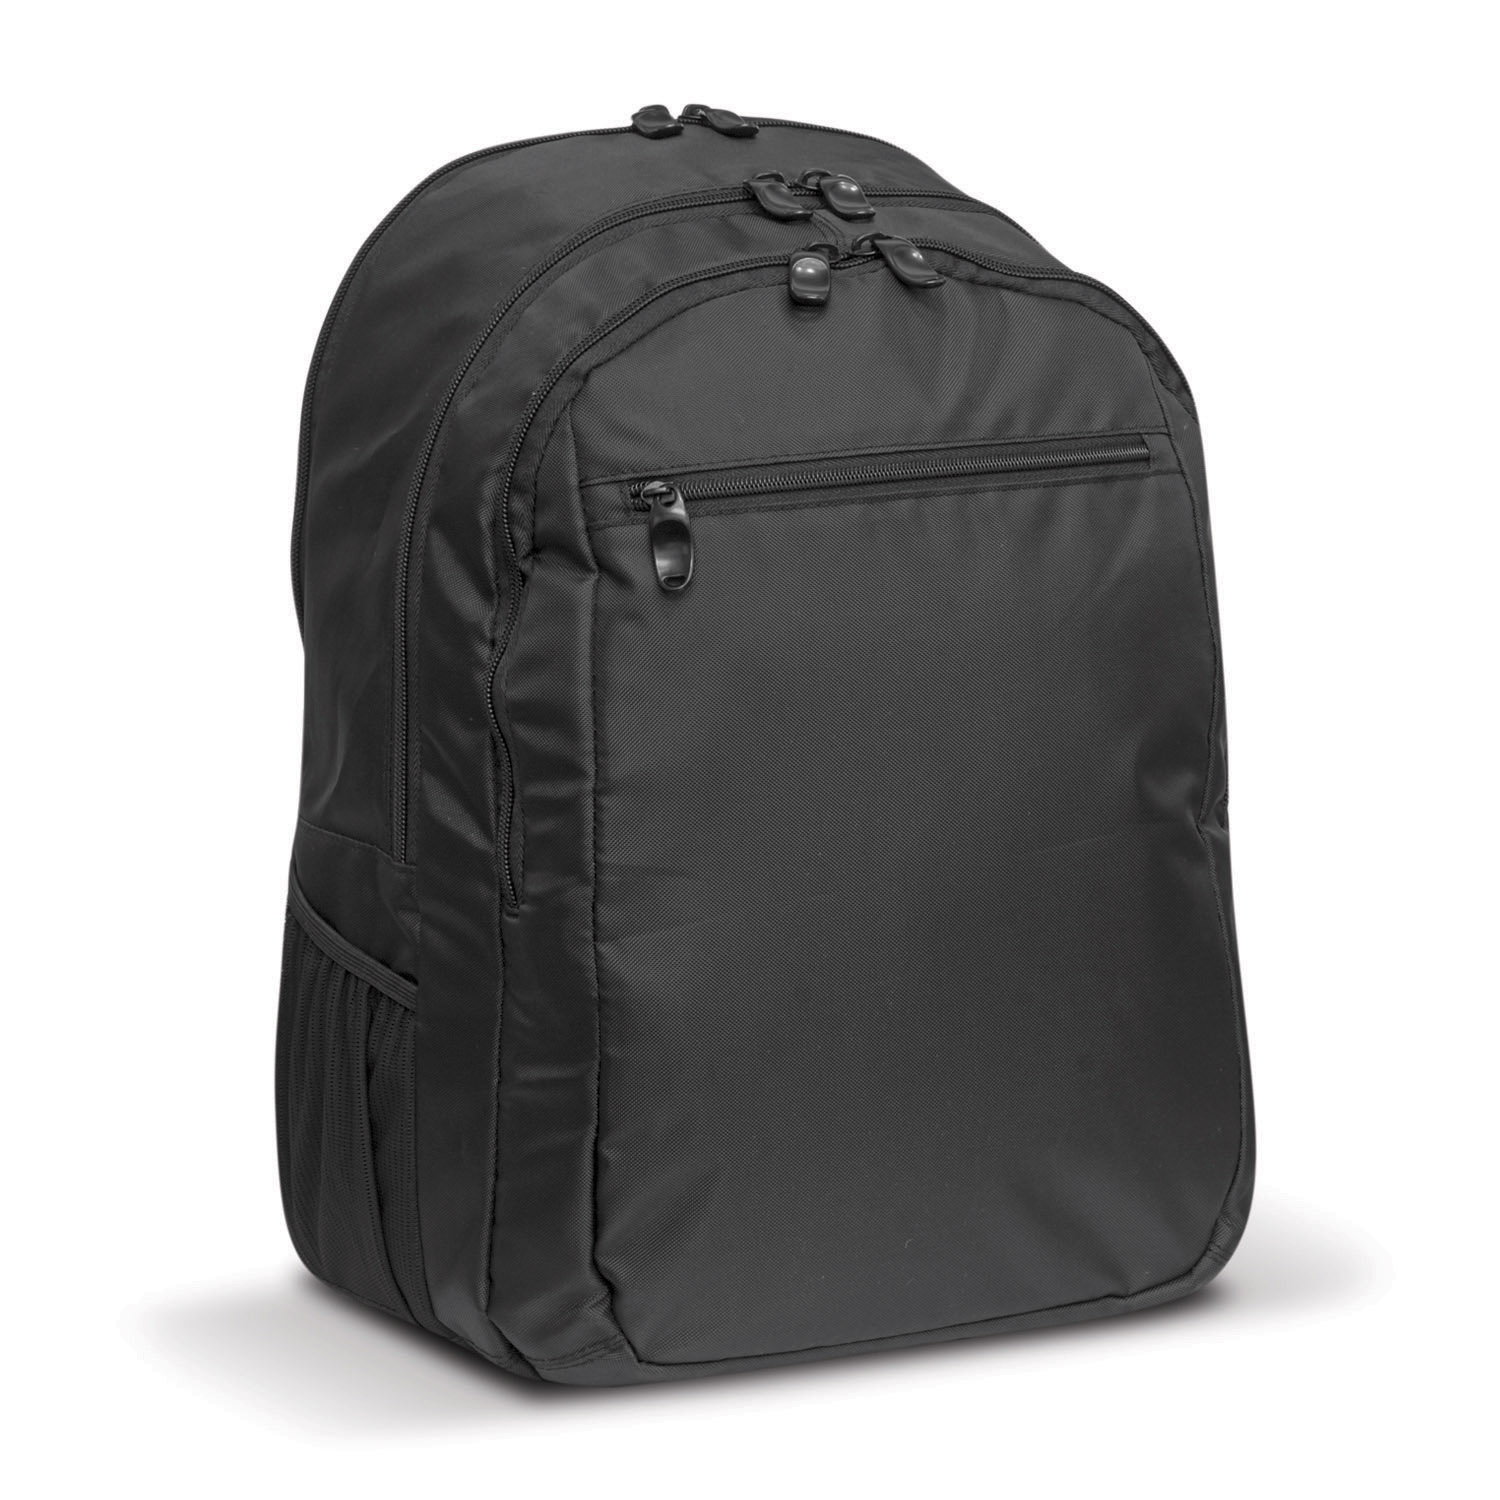 107687-0-Senator Laptop Backpack